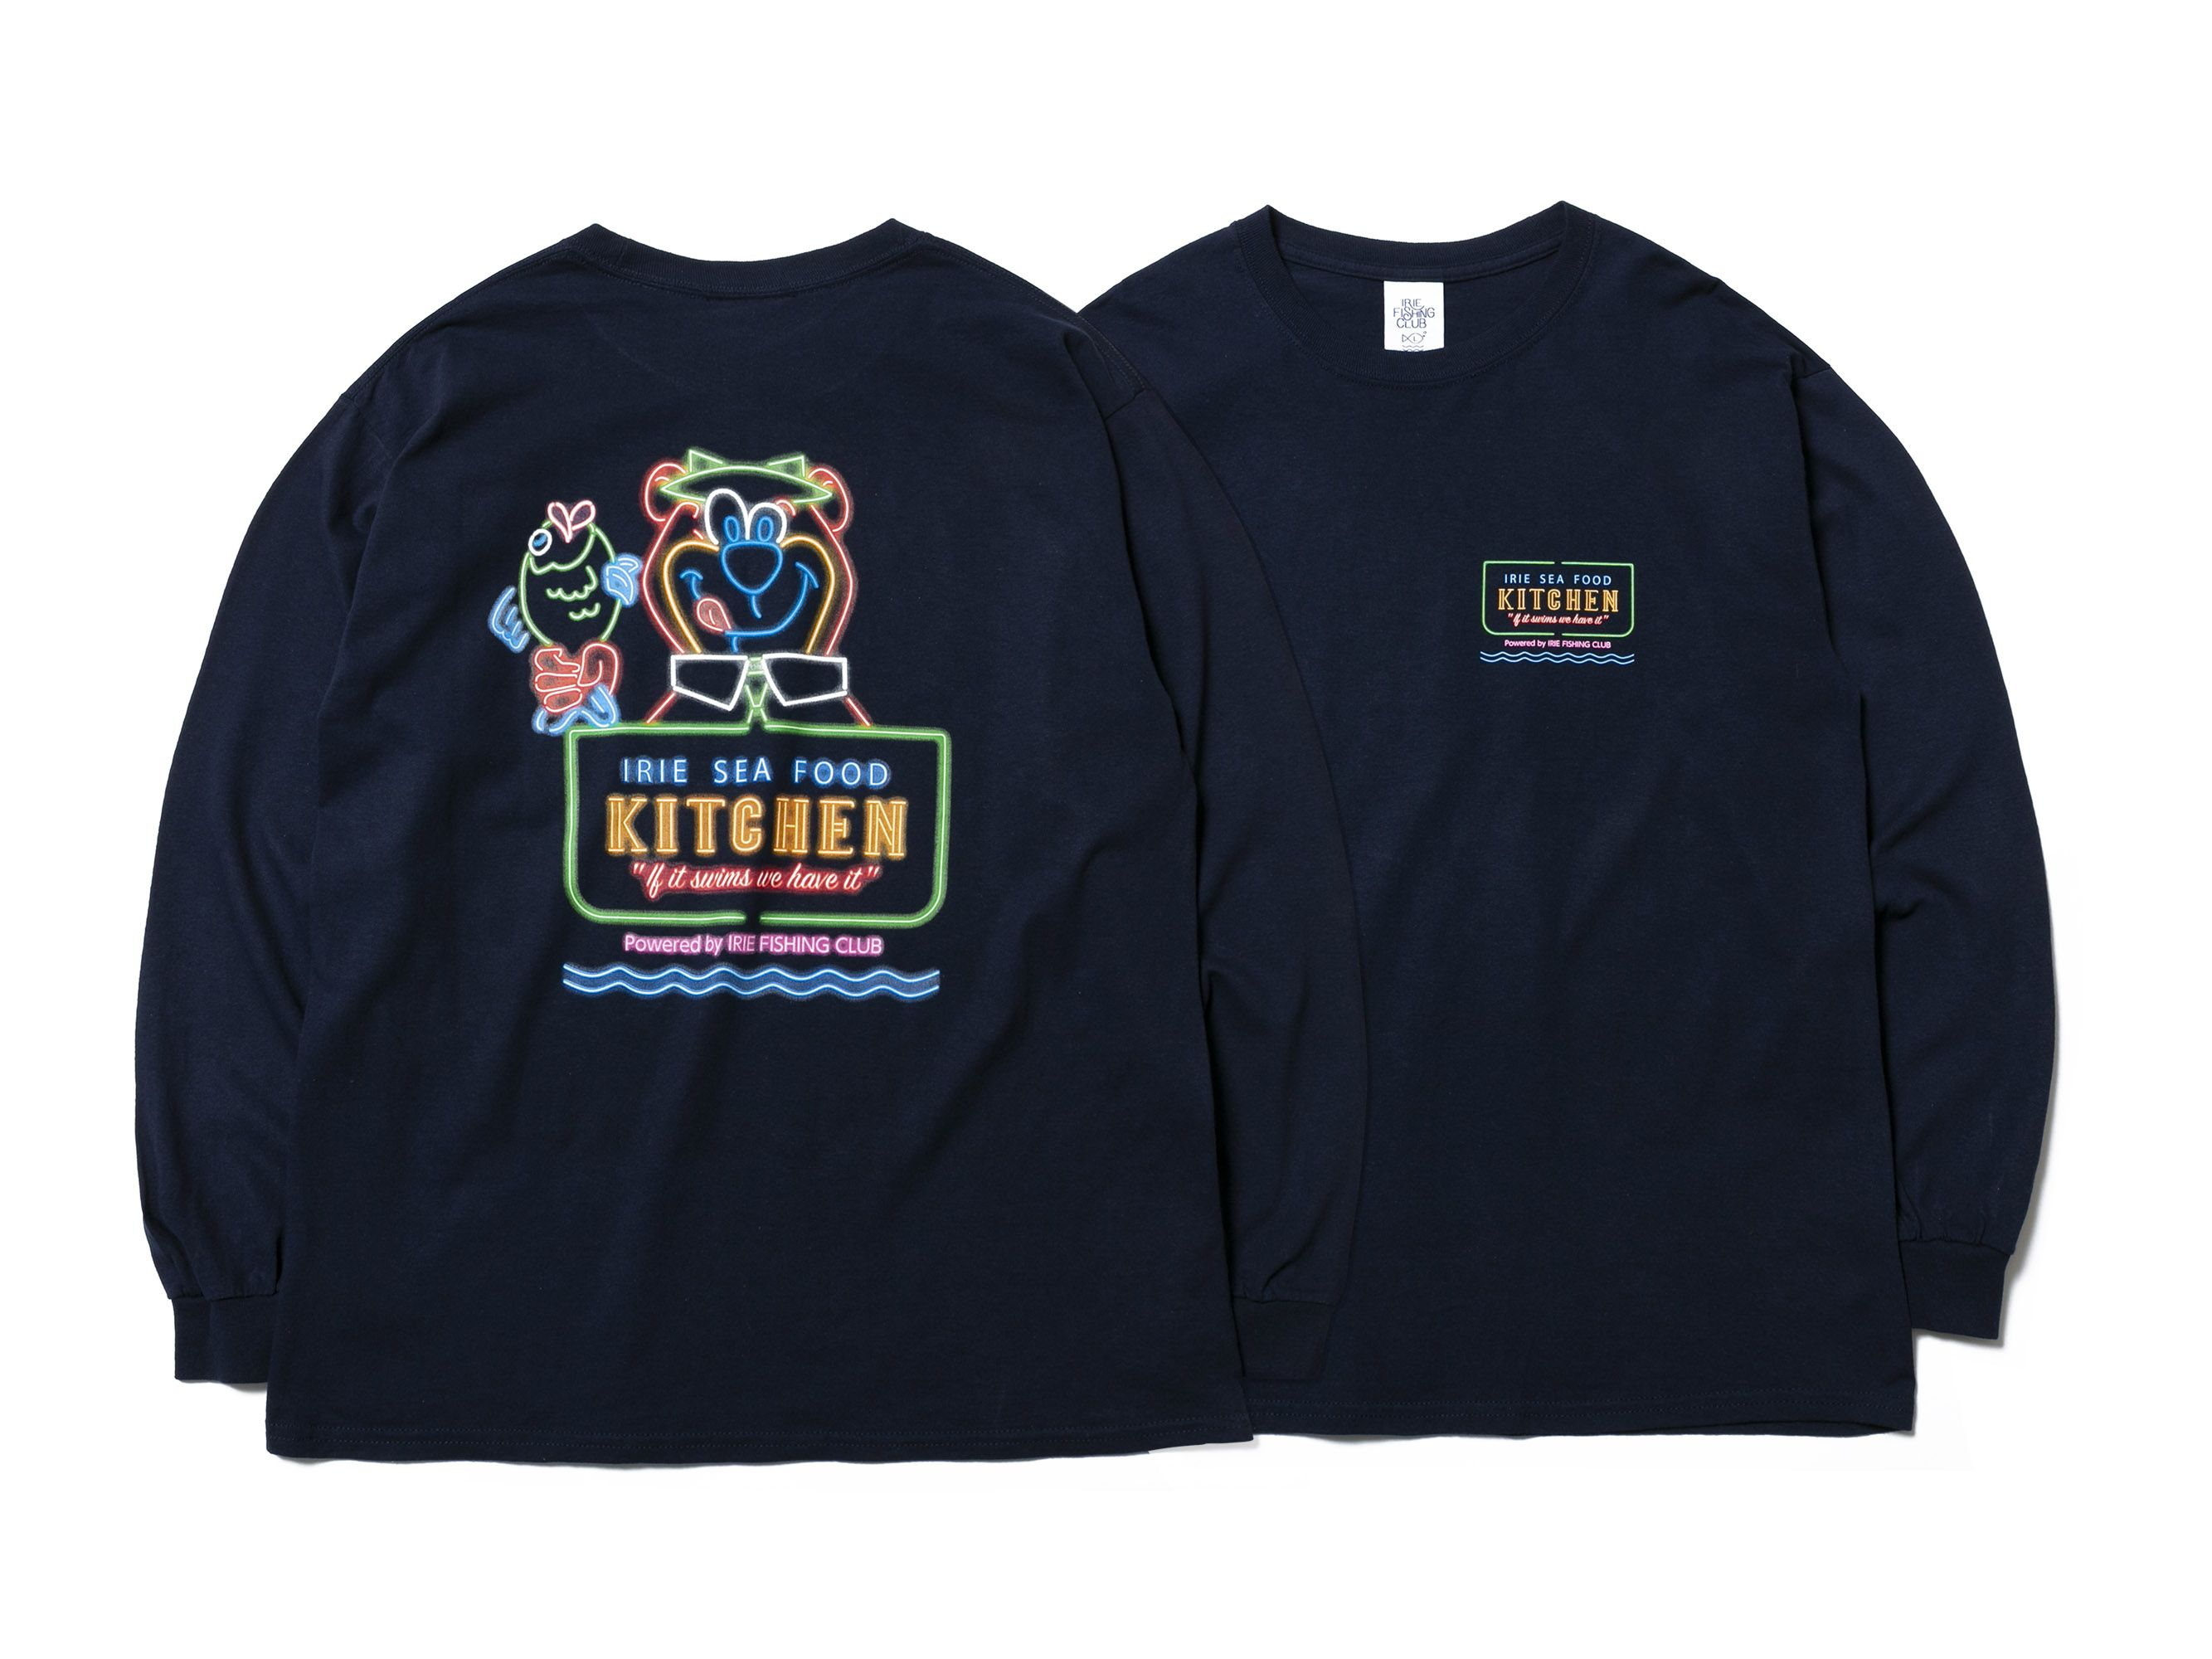 I.F.C IRIE SEA FOOD KITCHEN L/S TEE -IRIE FISHING CLUB-